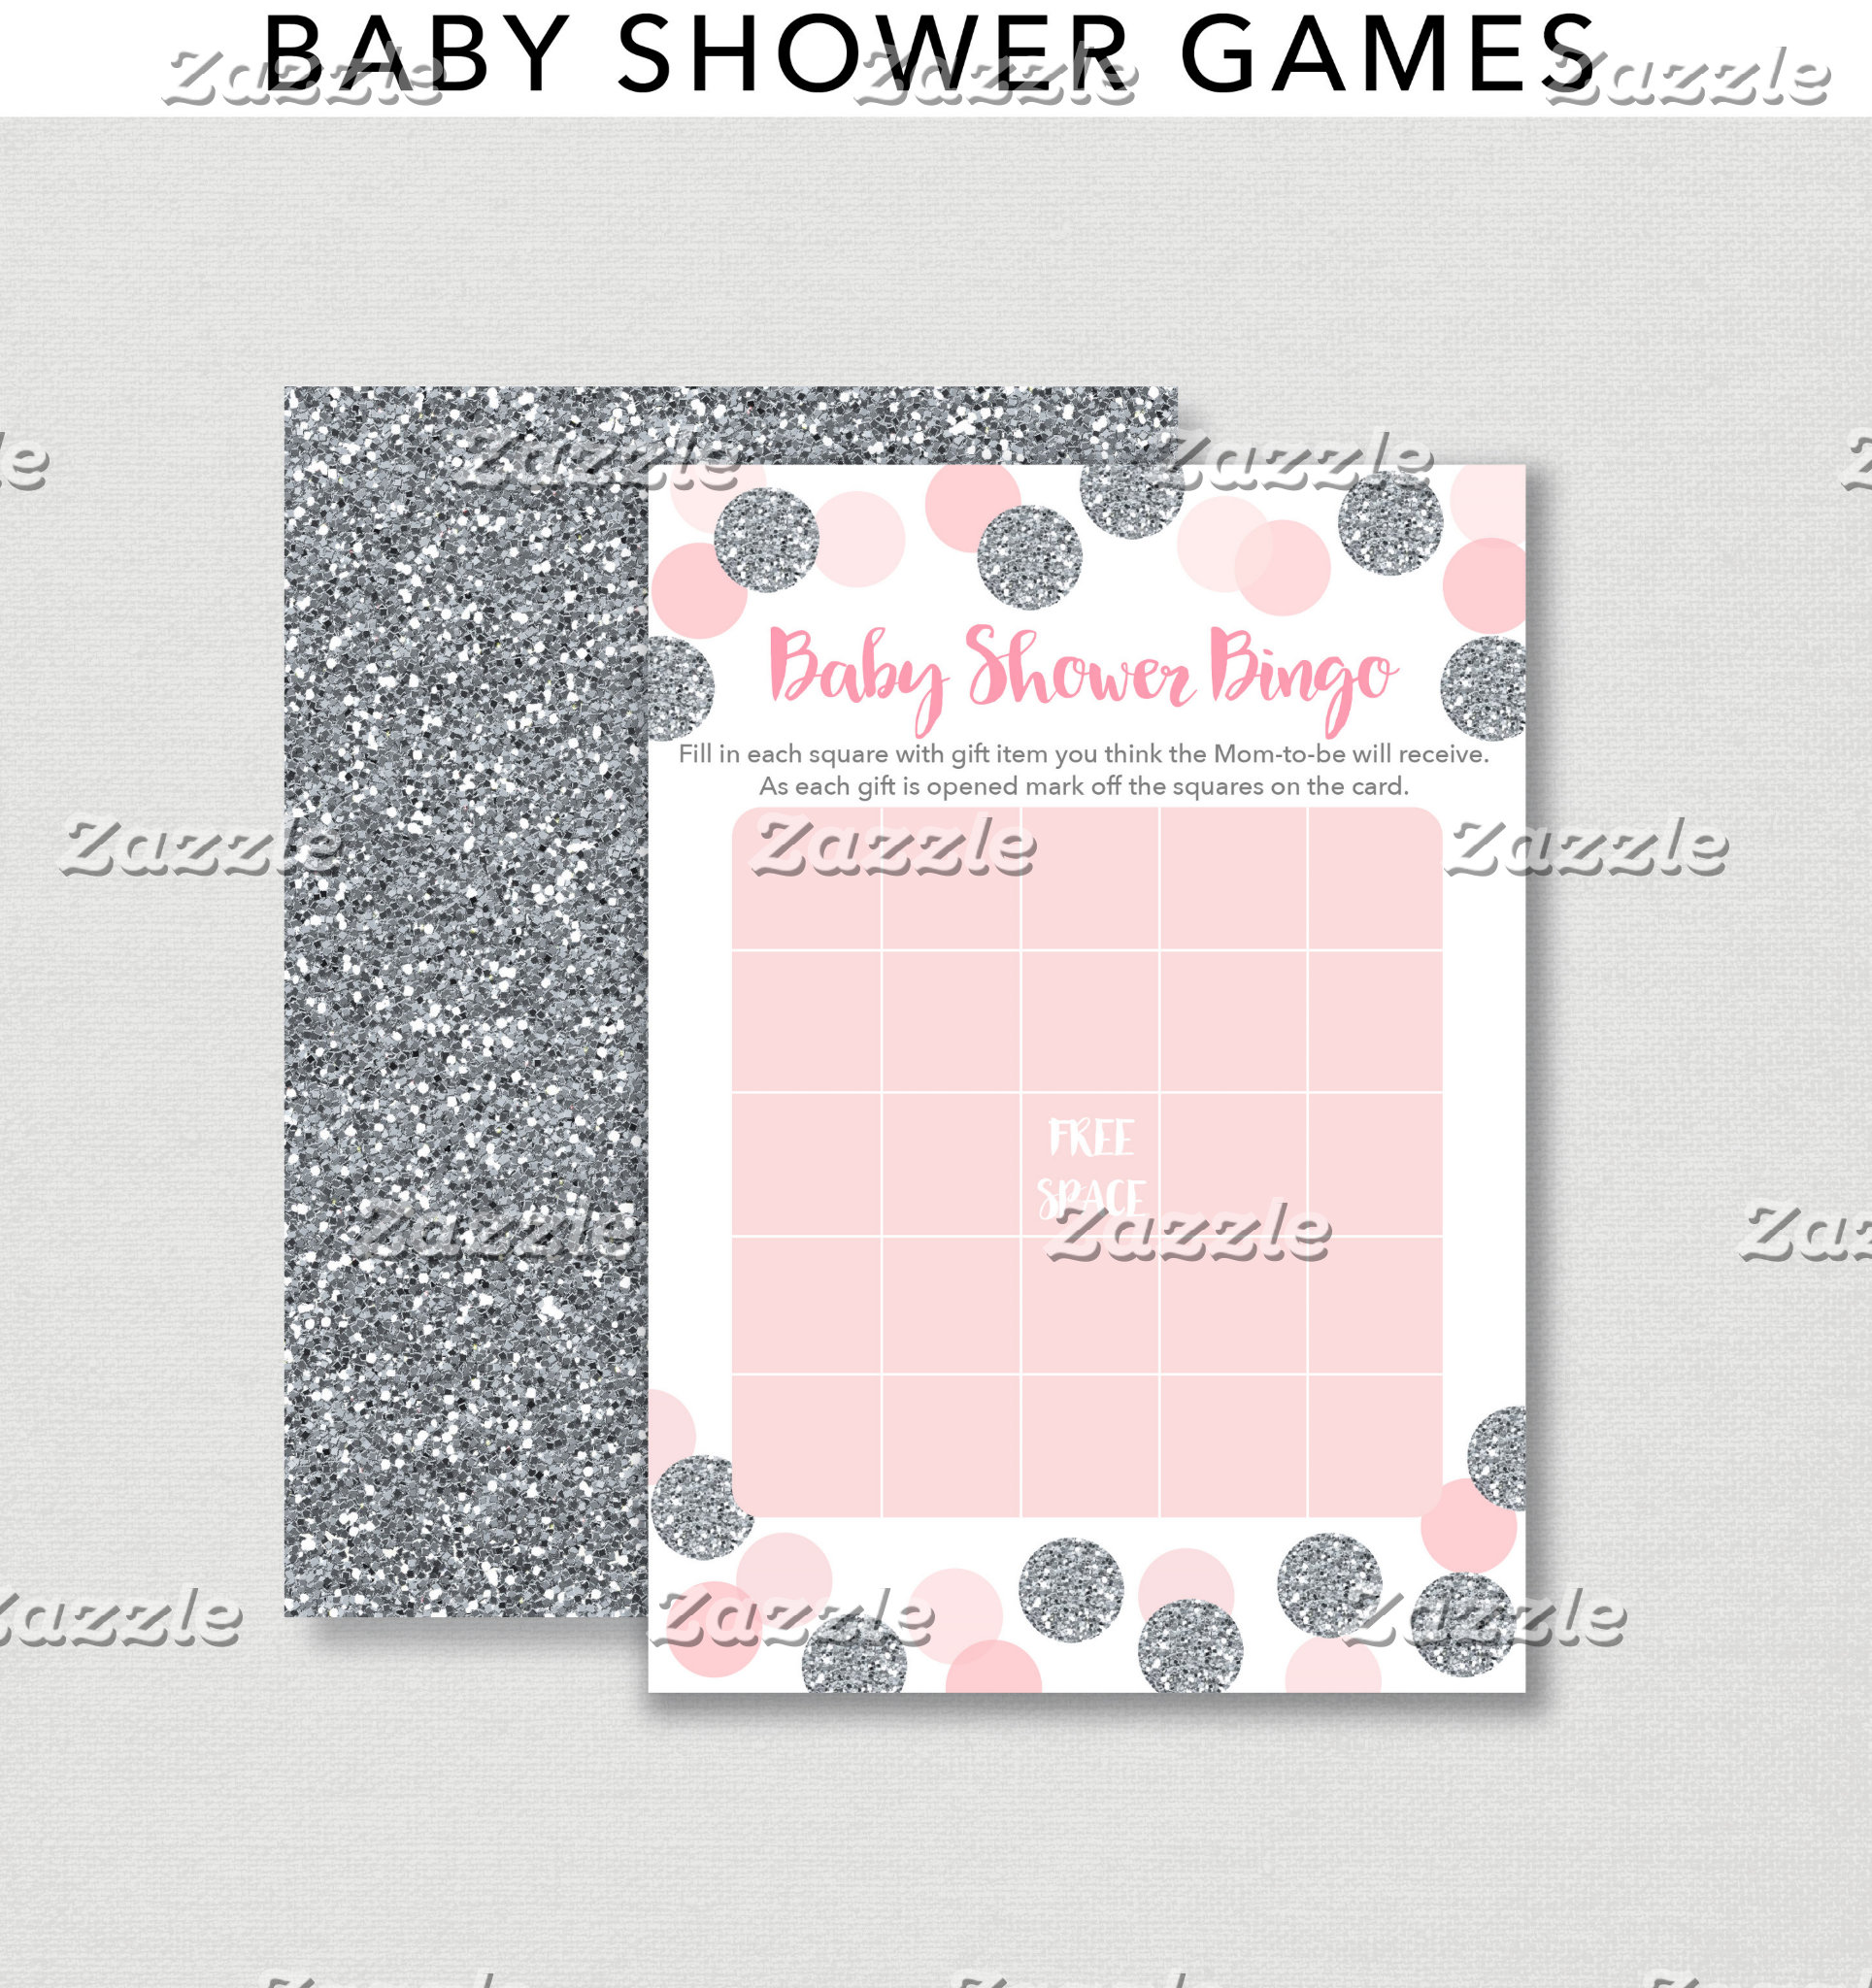 Baby Shower Games